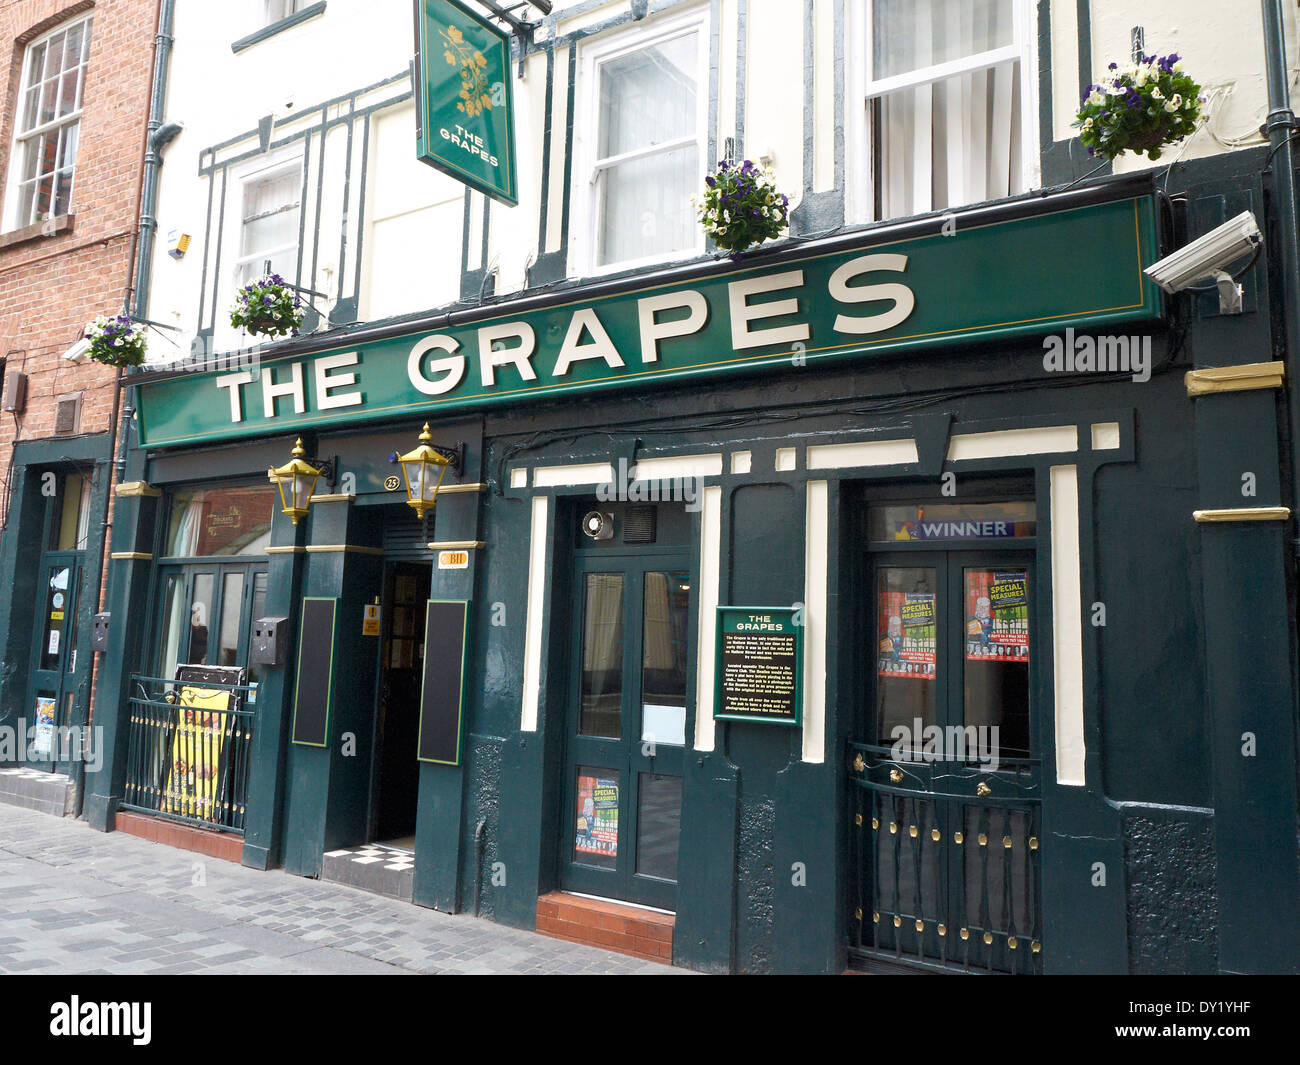 The Grapes pub in Mathew Street Liverpool UK - Stock Image